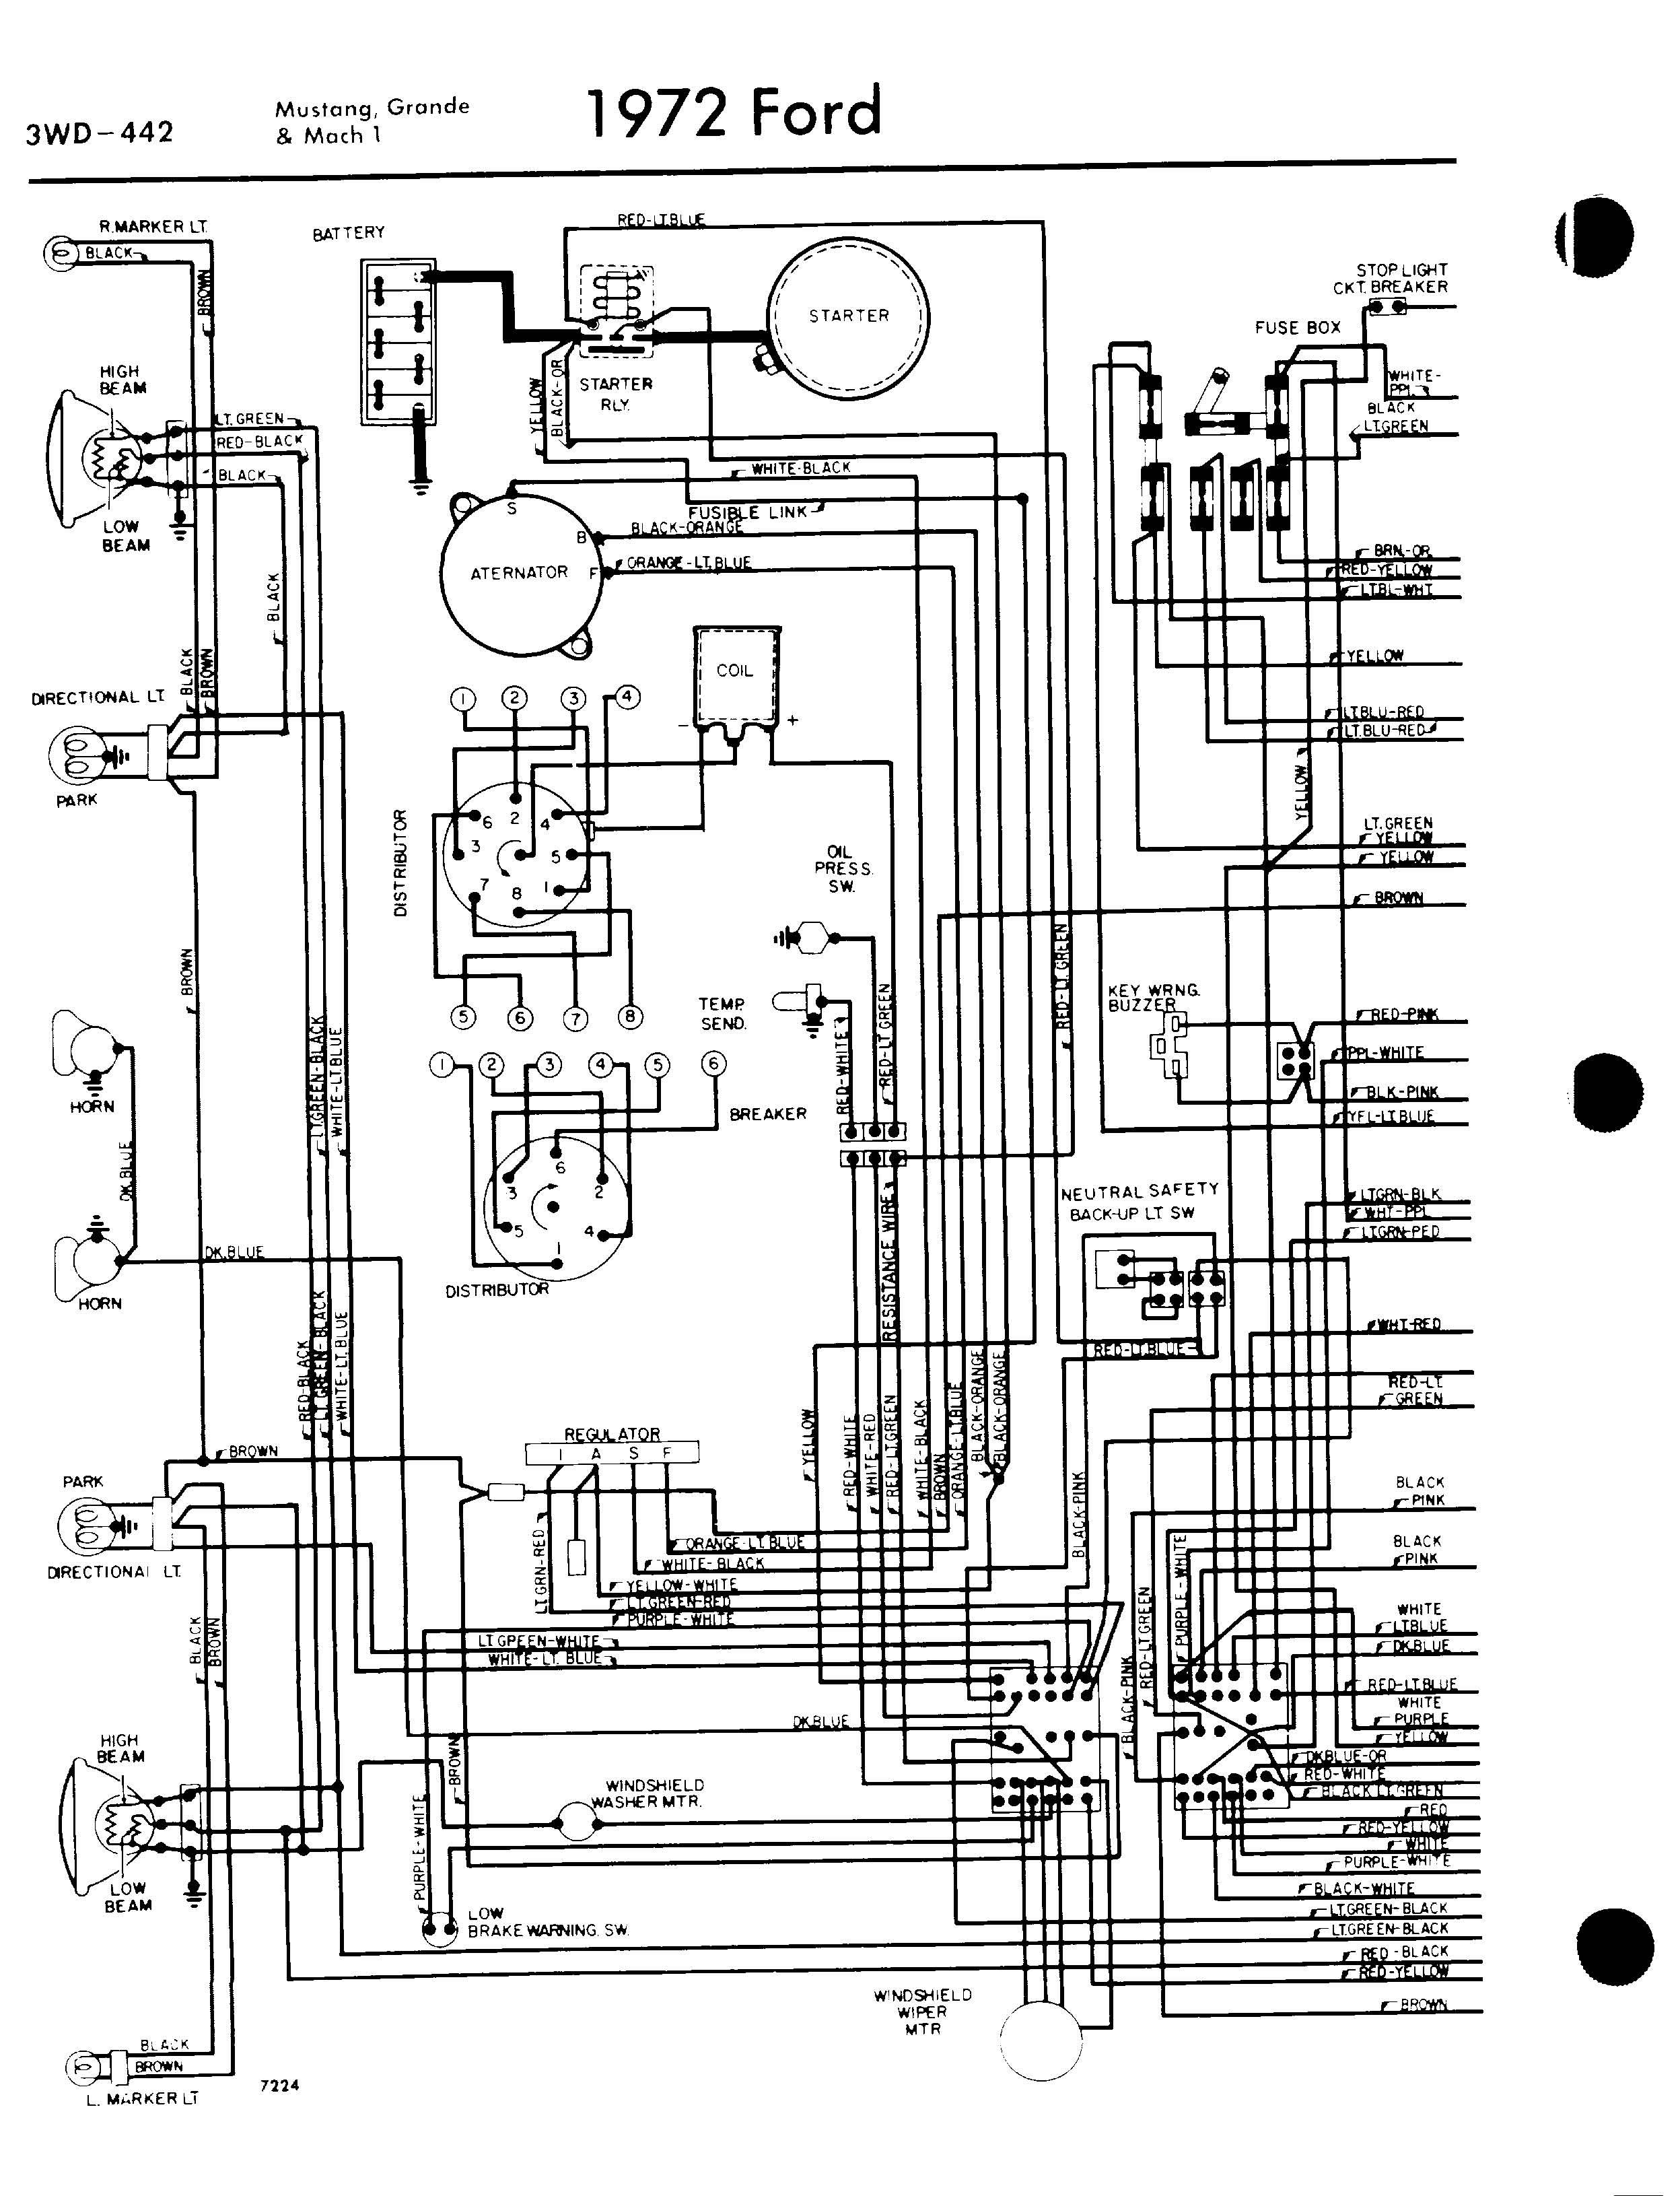 71af7a58e095e6a7716b32f1b23e8bd2 72 mach1 alternator wire harness diagram yahoo search results Ford Alternator Wiring Diagram at virtualis.co